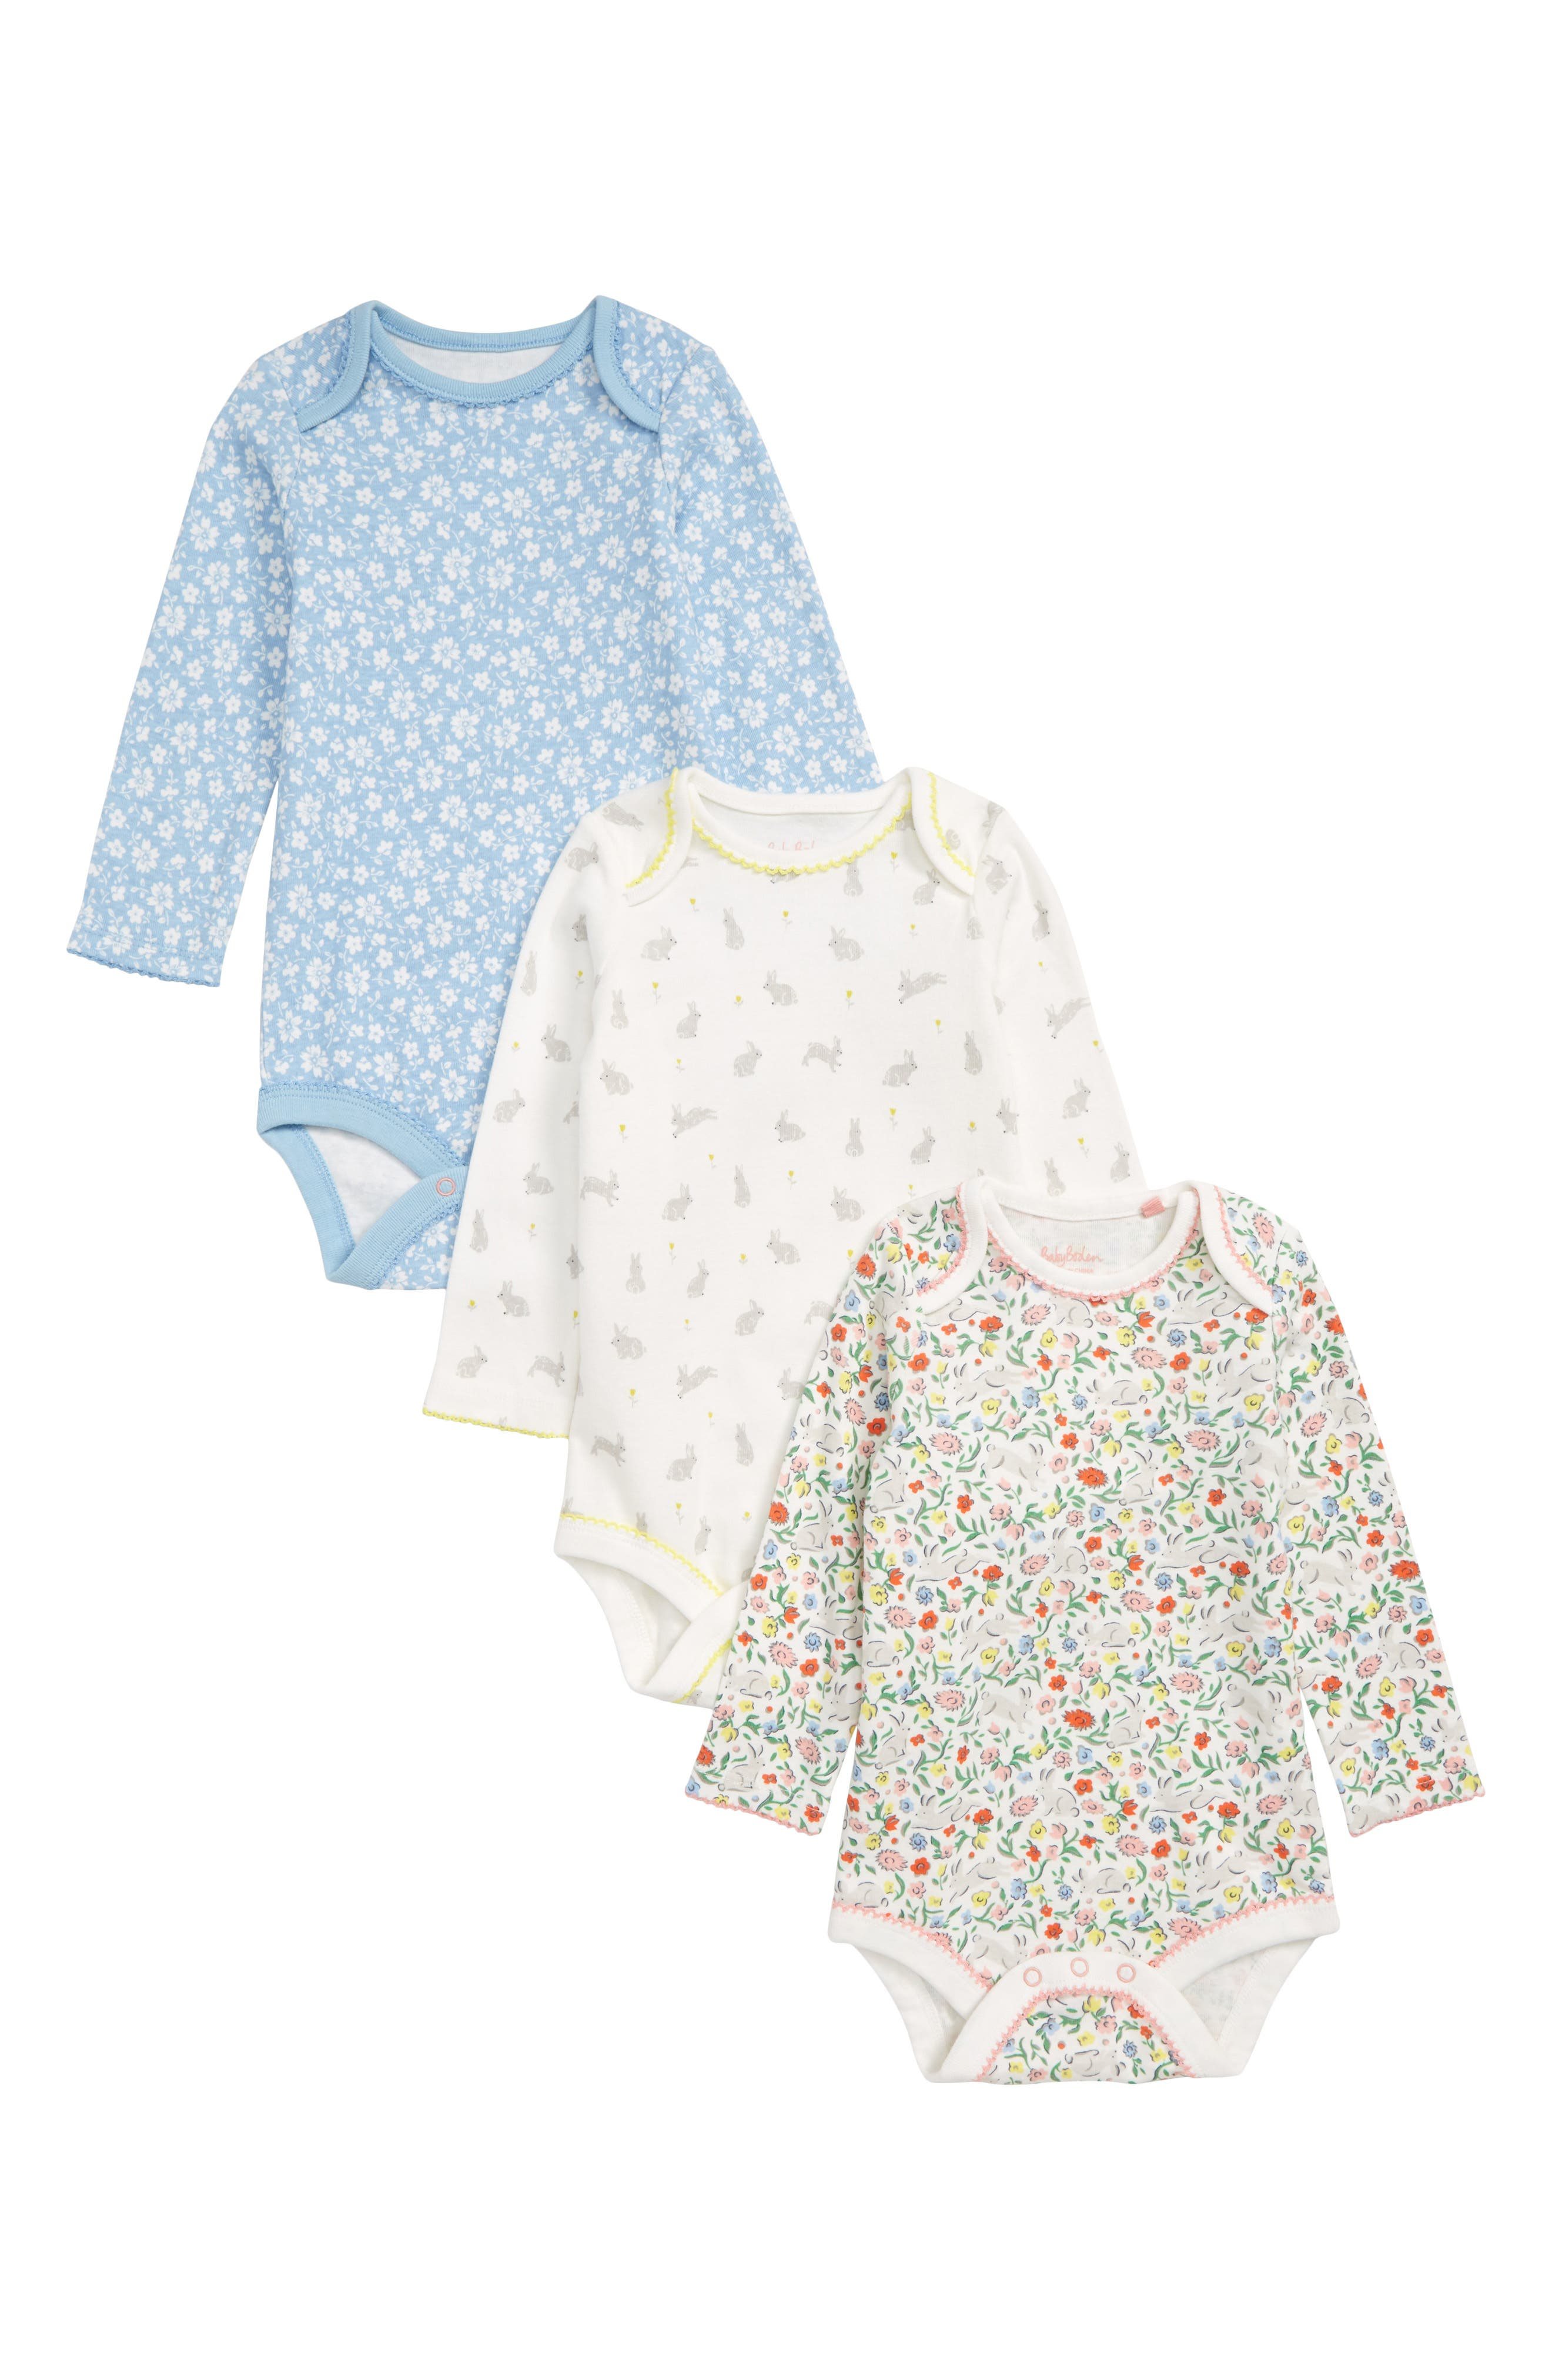 4917691a451 Mini Boden Baby Girl Bodysuits Clothing  Dresses